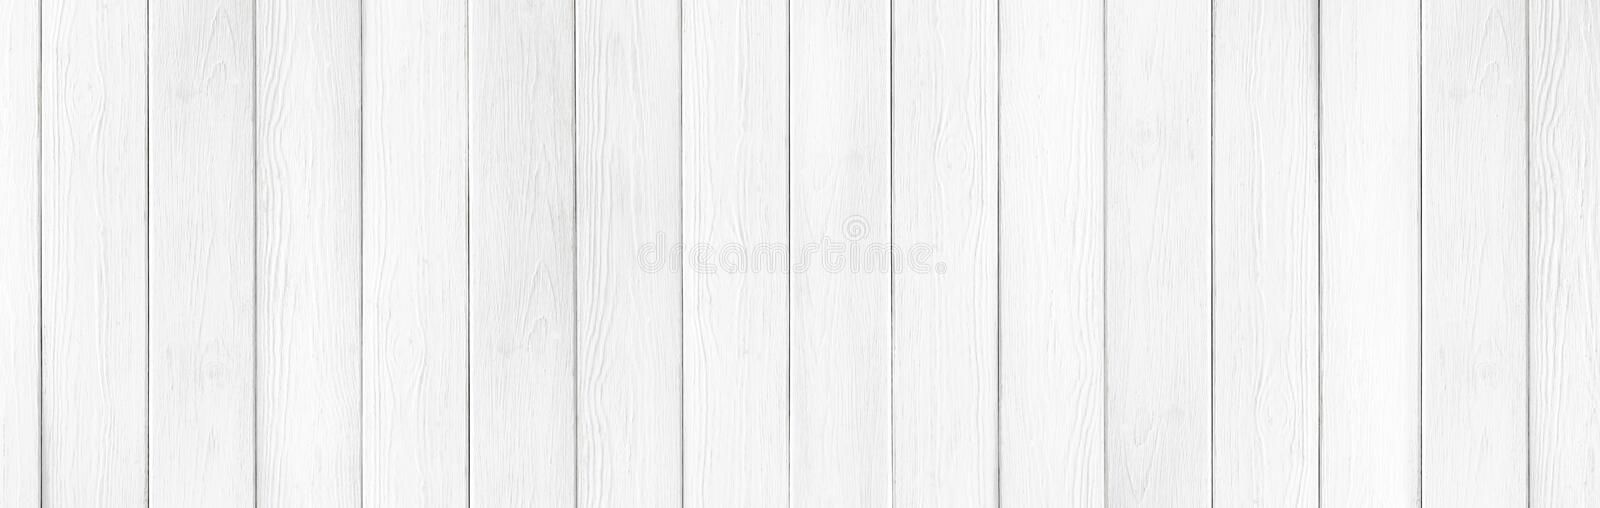 Wooden rustic white planks texture wide background royalty free stock photos